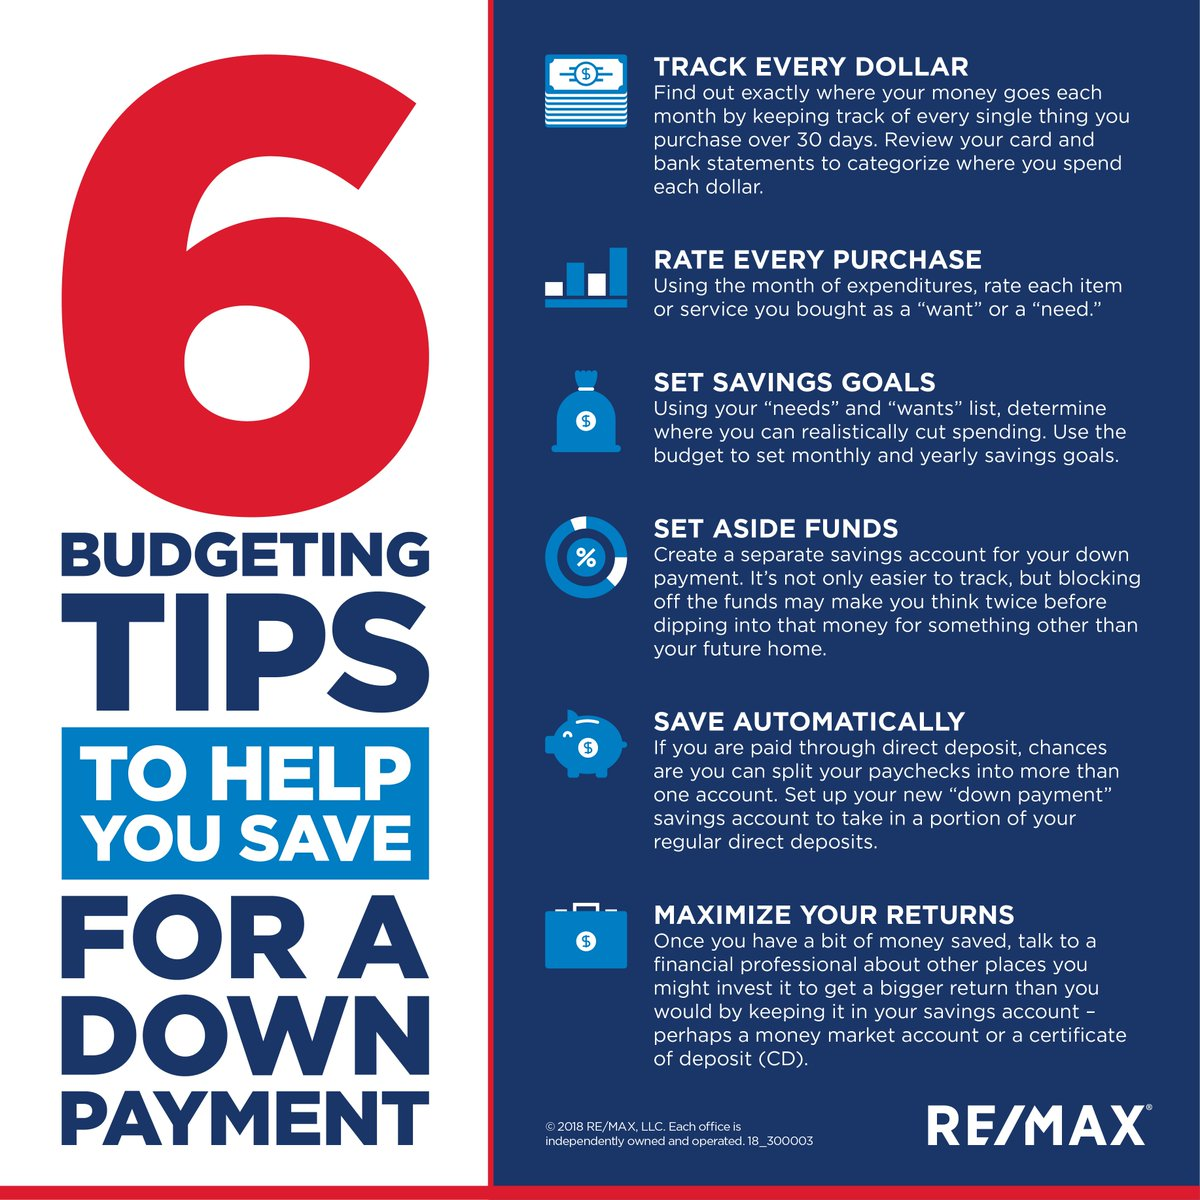 Remax On Twitter Saving Enough Cash For A Down Payment May Seem